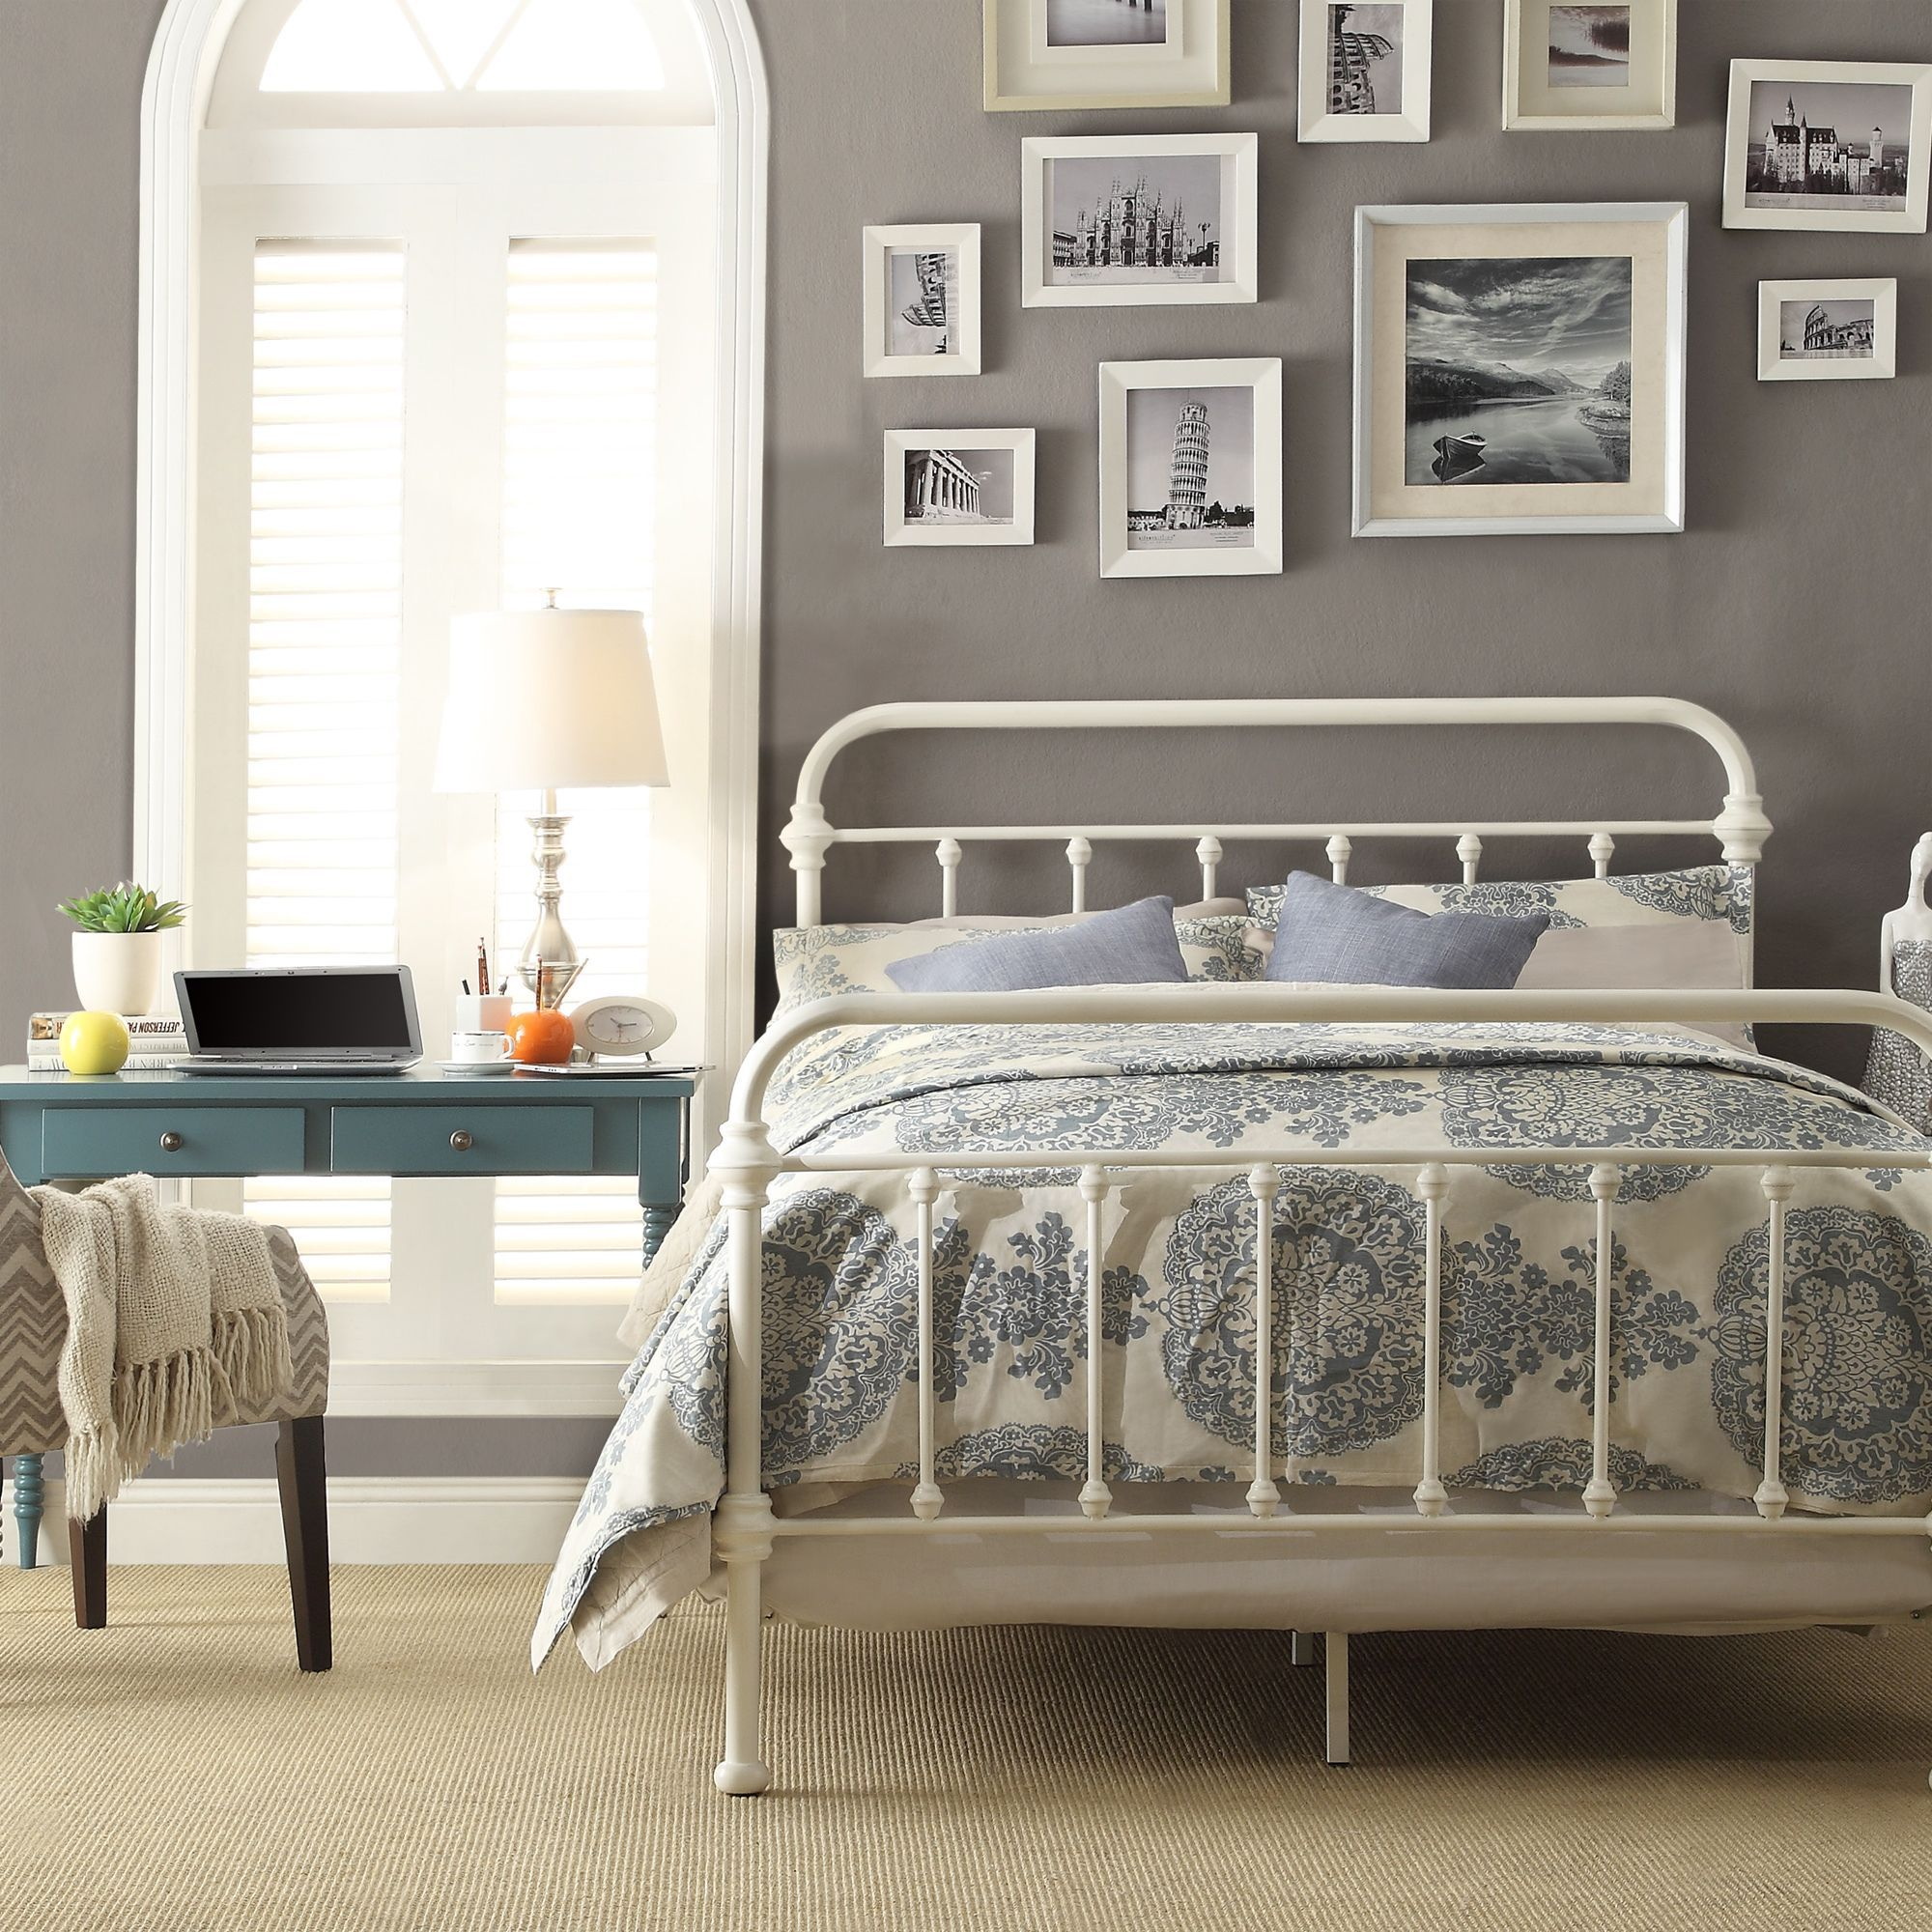 Giselle antique white graceful lines victorian iron metal bed by inspire q classic by inspire q